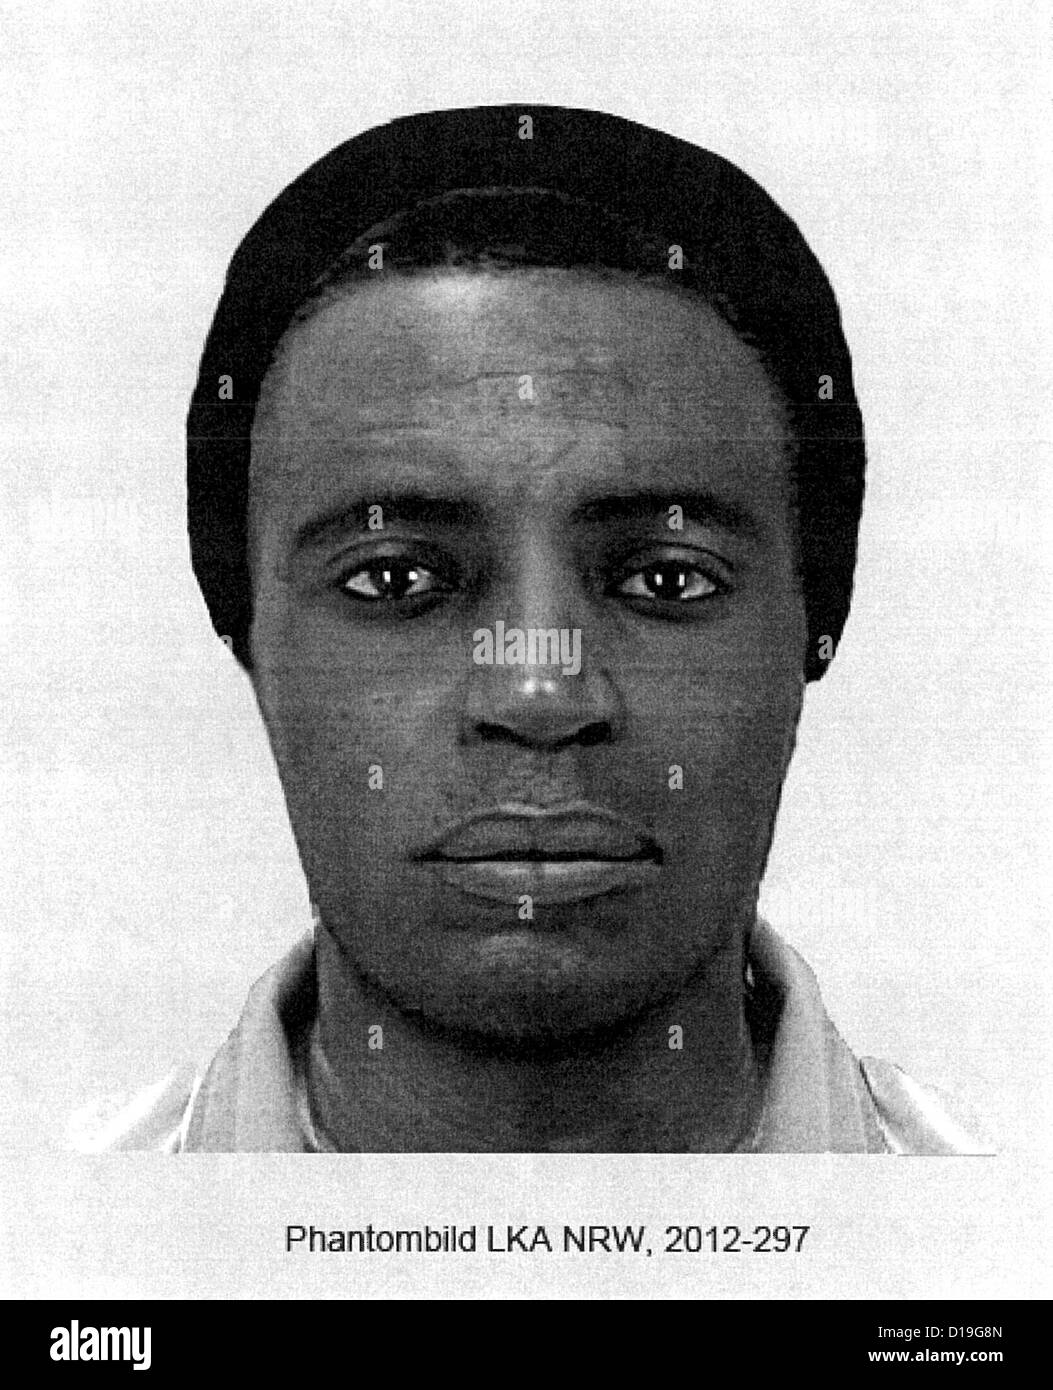 (HANDOUT) A handout from the Cologne Police shows the facial composite of a man sought by the police in connection - Stock Image